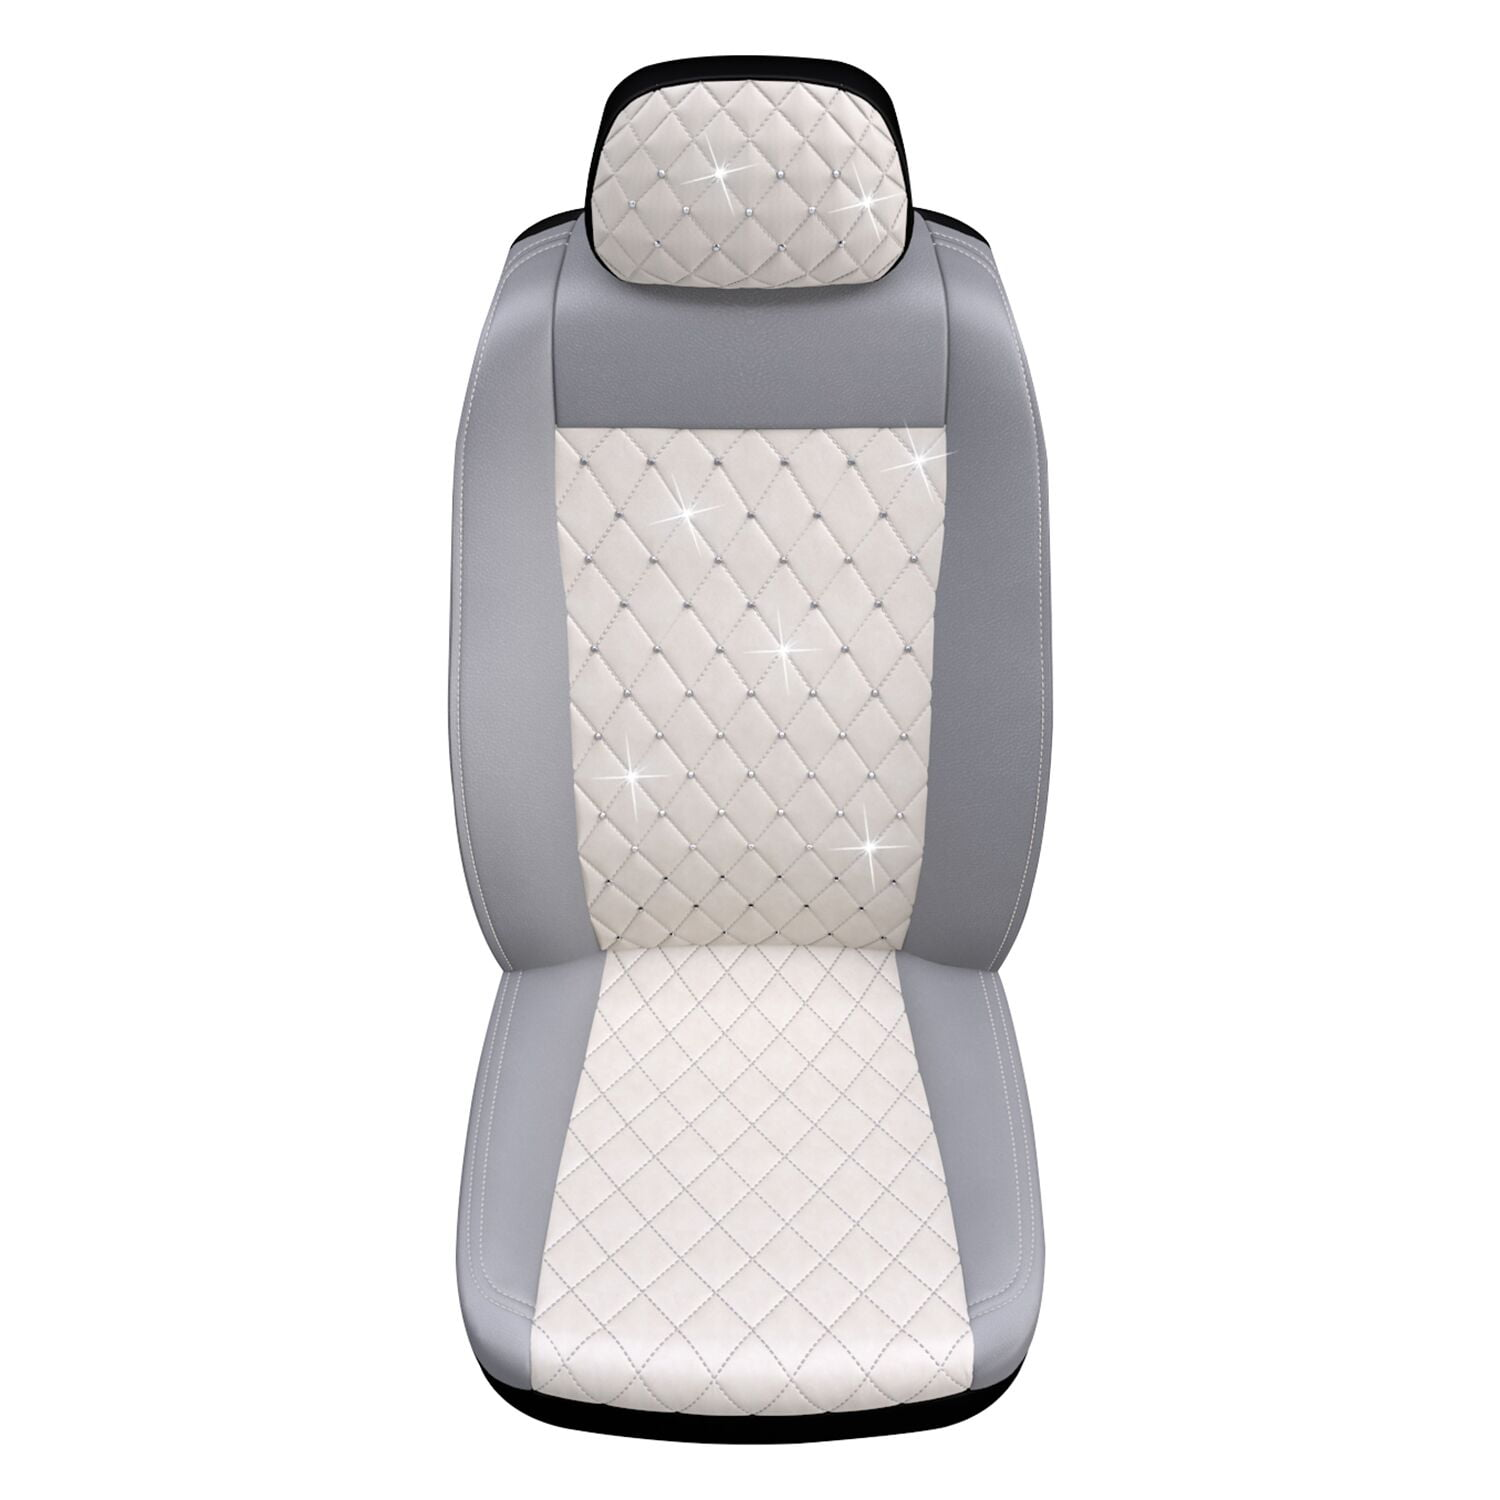 Premium Diamond Seat Cover with Crystals from Swarovski, White